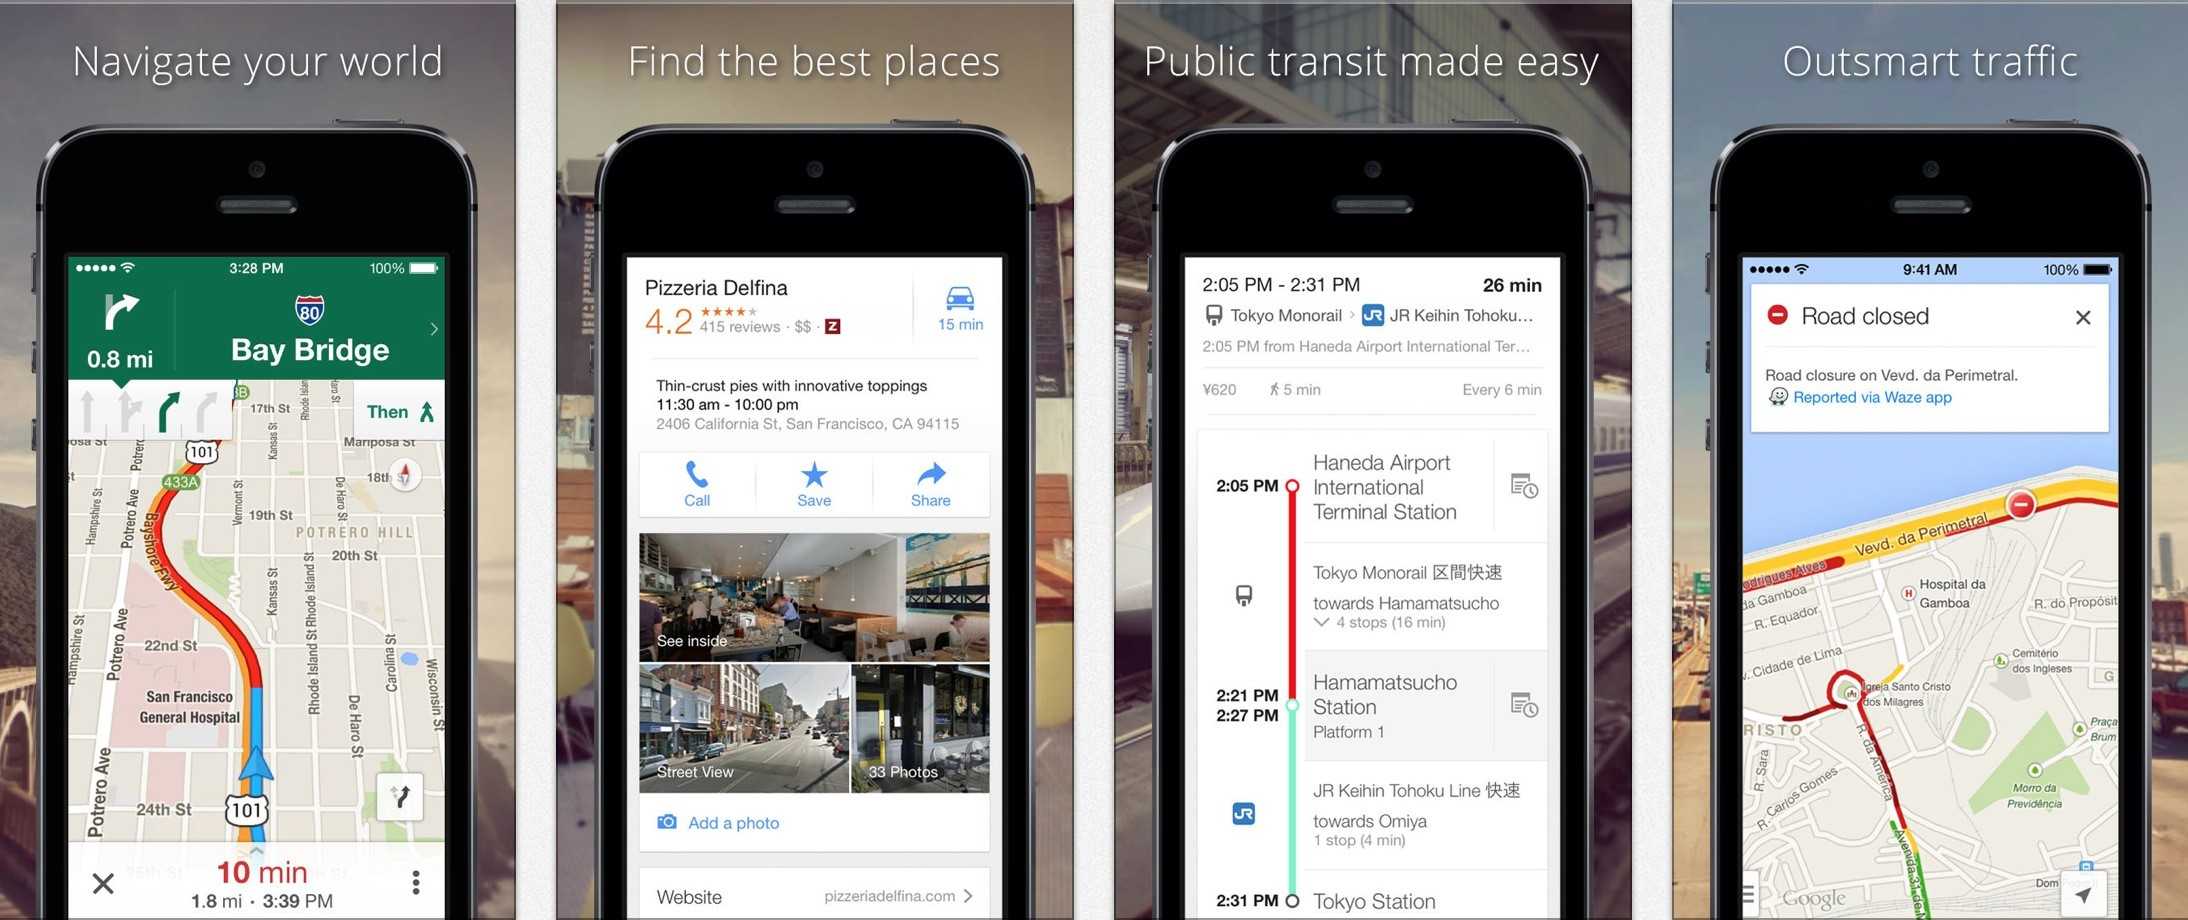 how to download maps on google maps ios